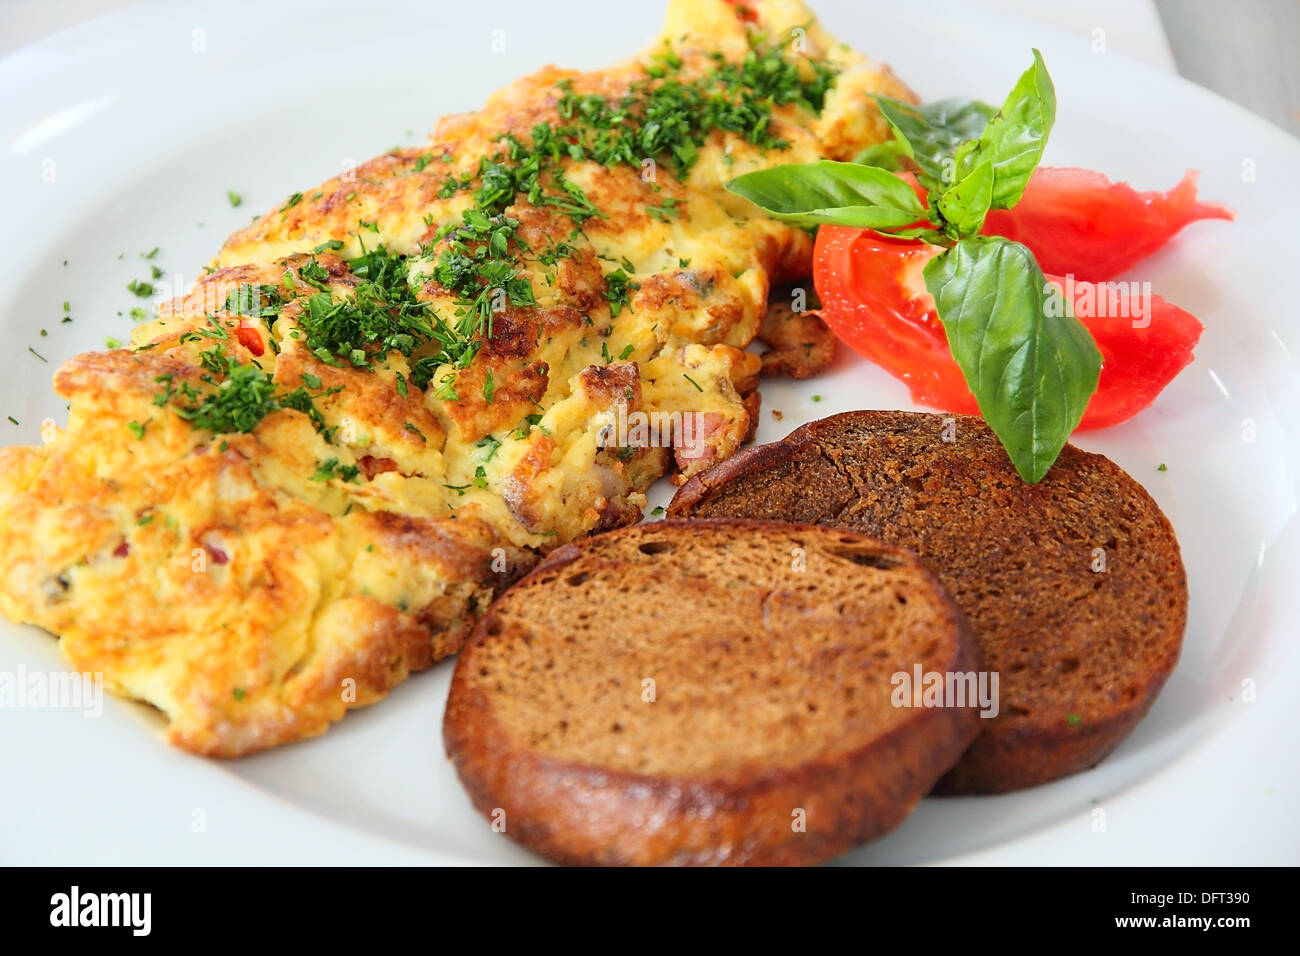 Omelet with grilled toast at the table - Stock Image